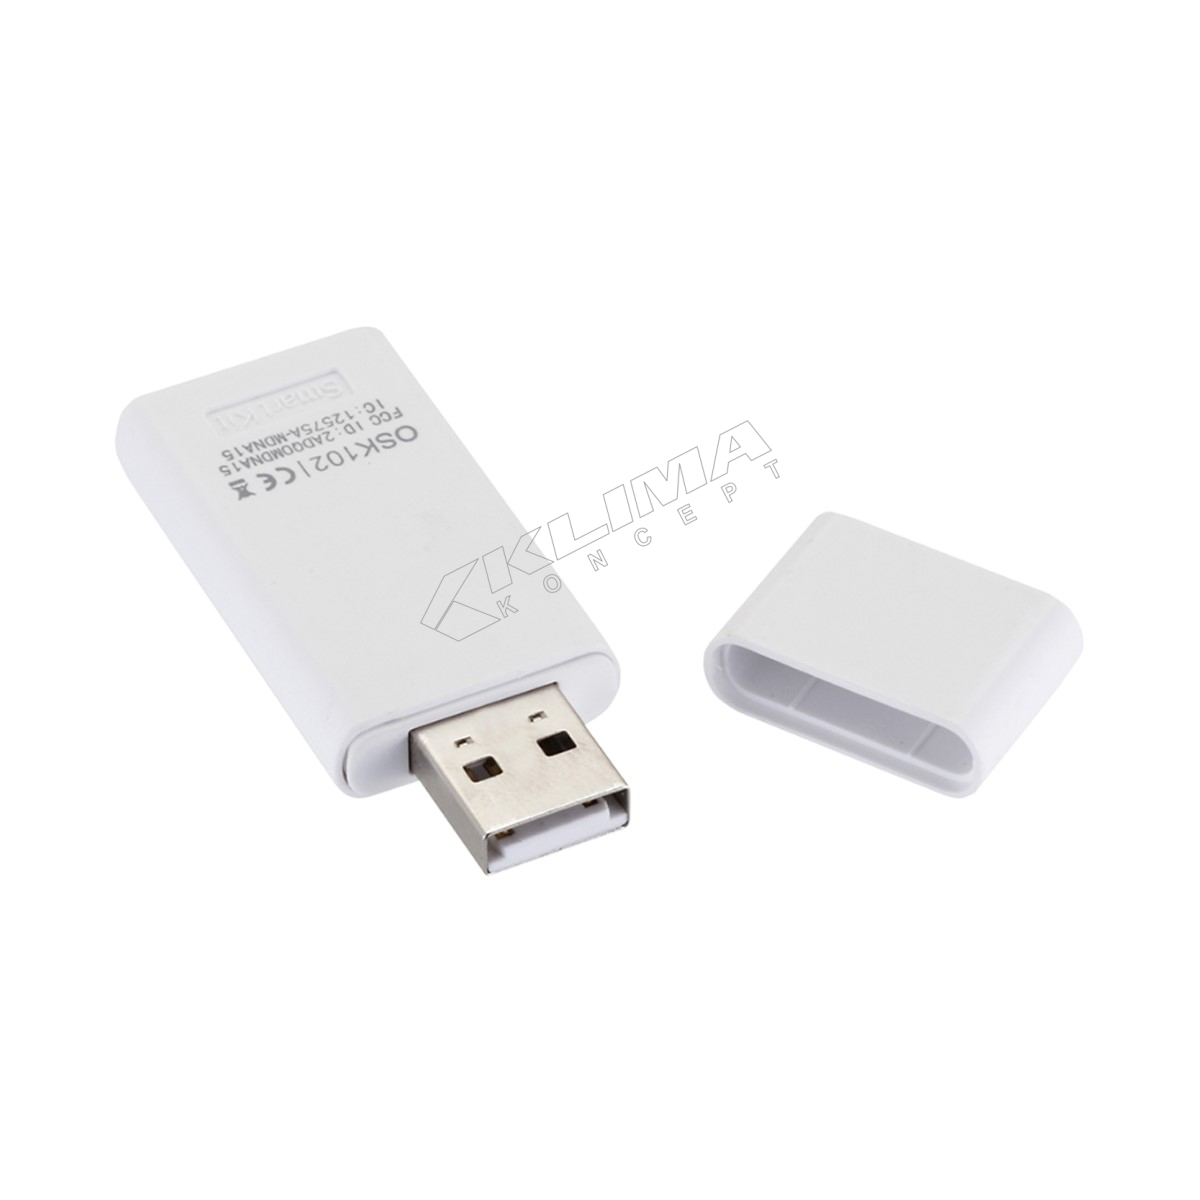 QZEN WIFI ADAPTER